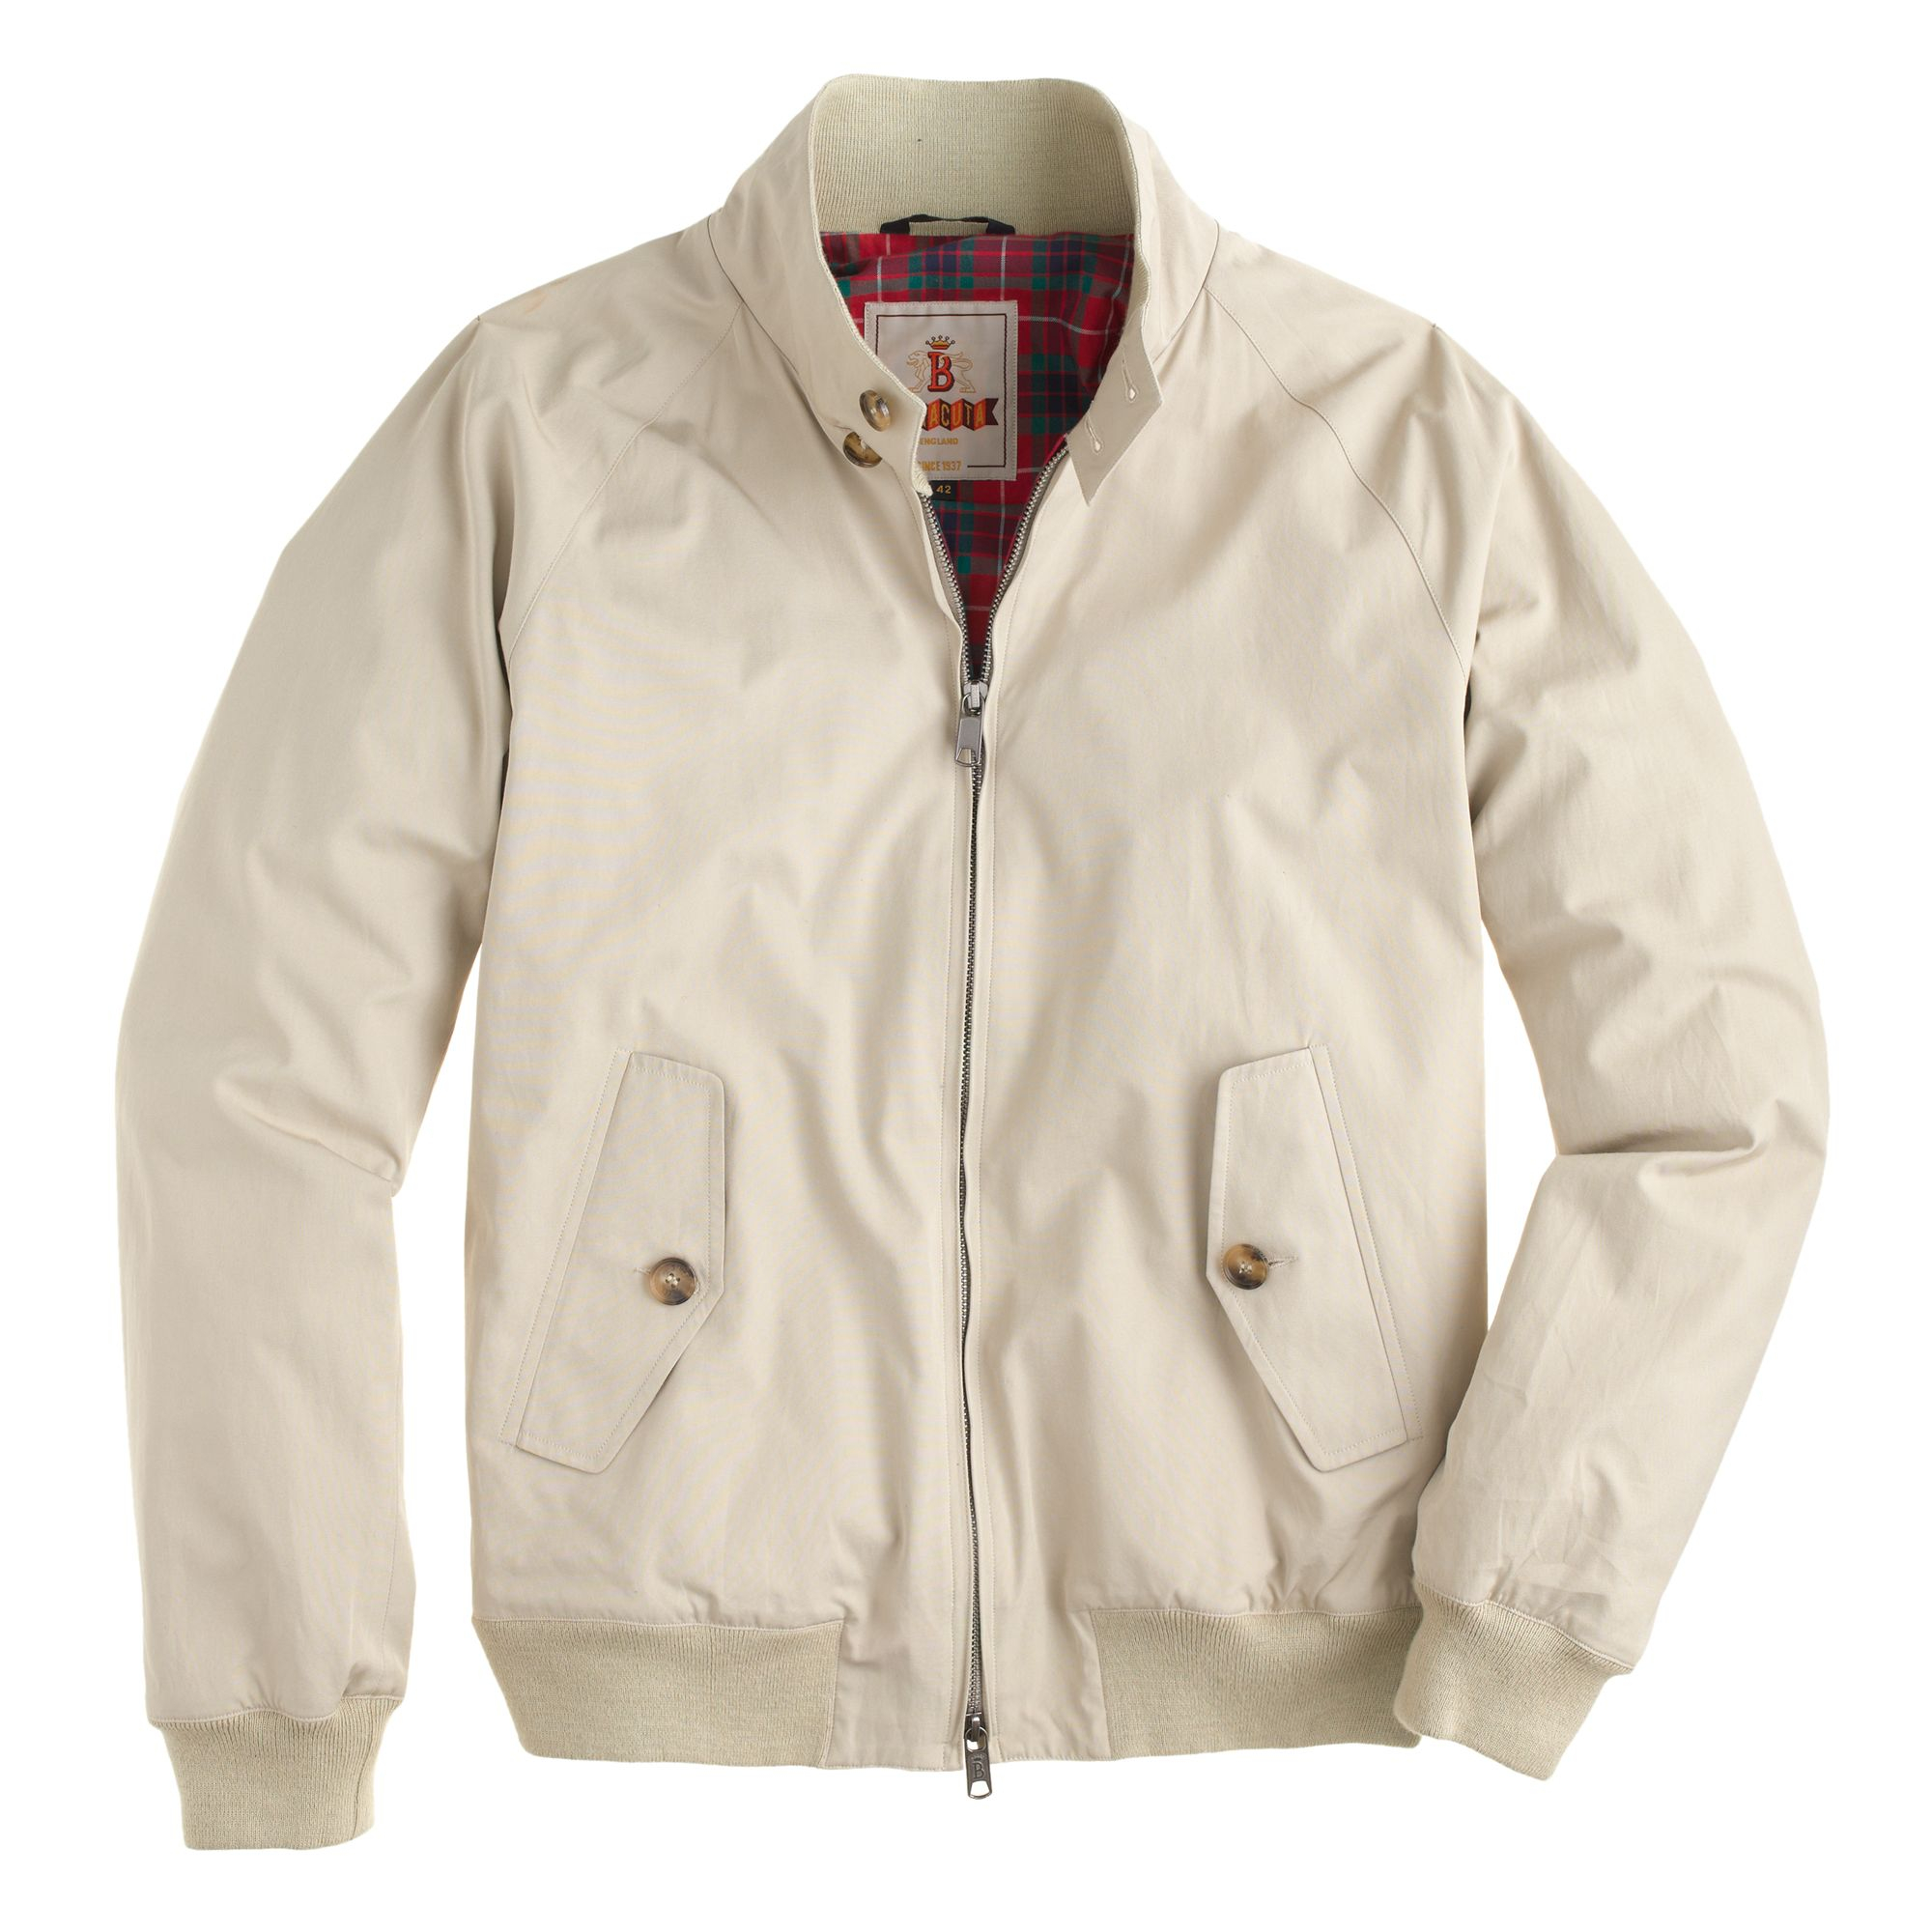 J Crew Baracuta G9 Harrington Jacket In Natural For Men Lyst